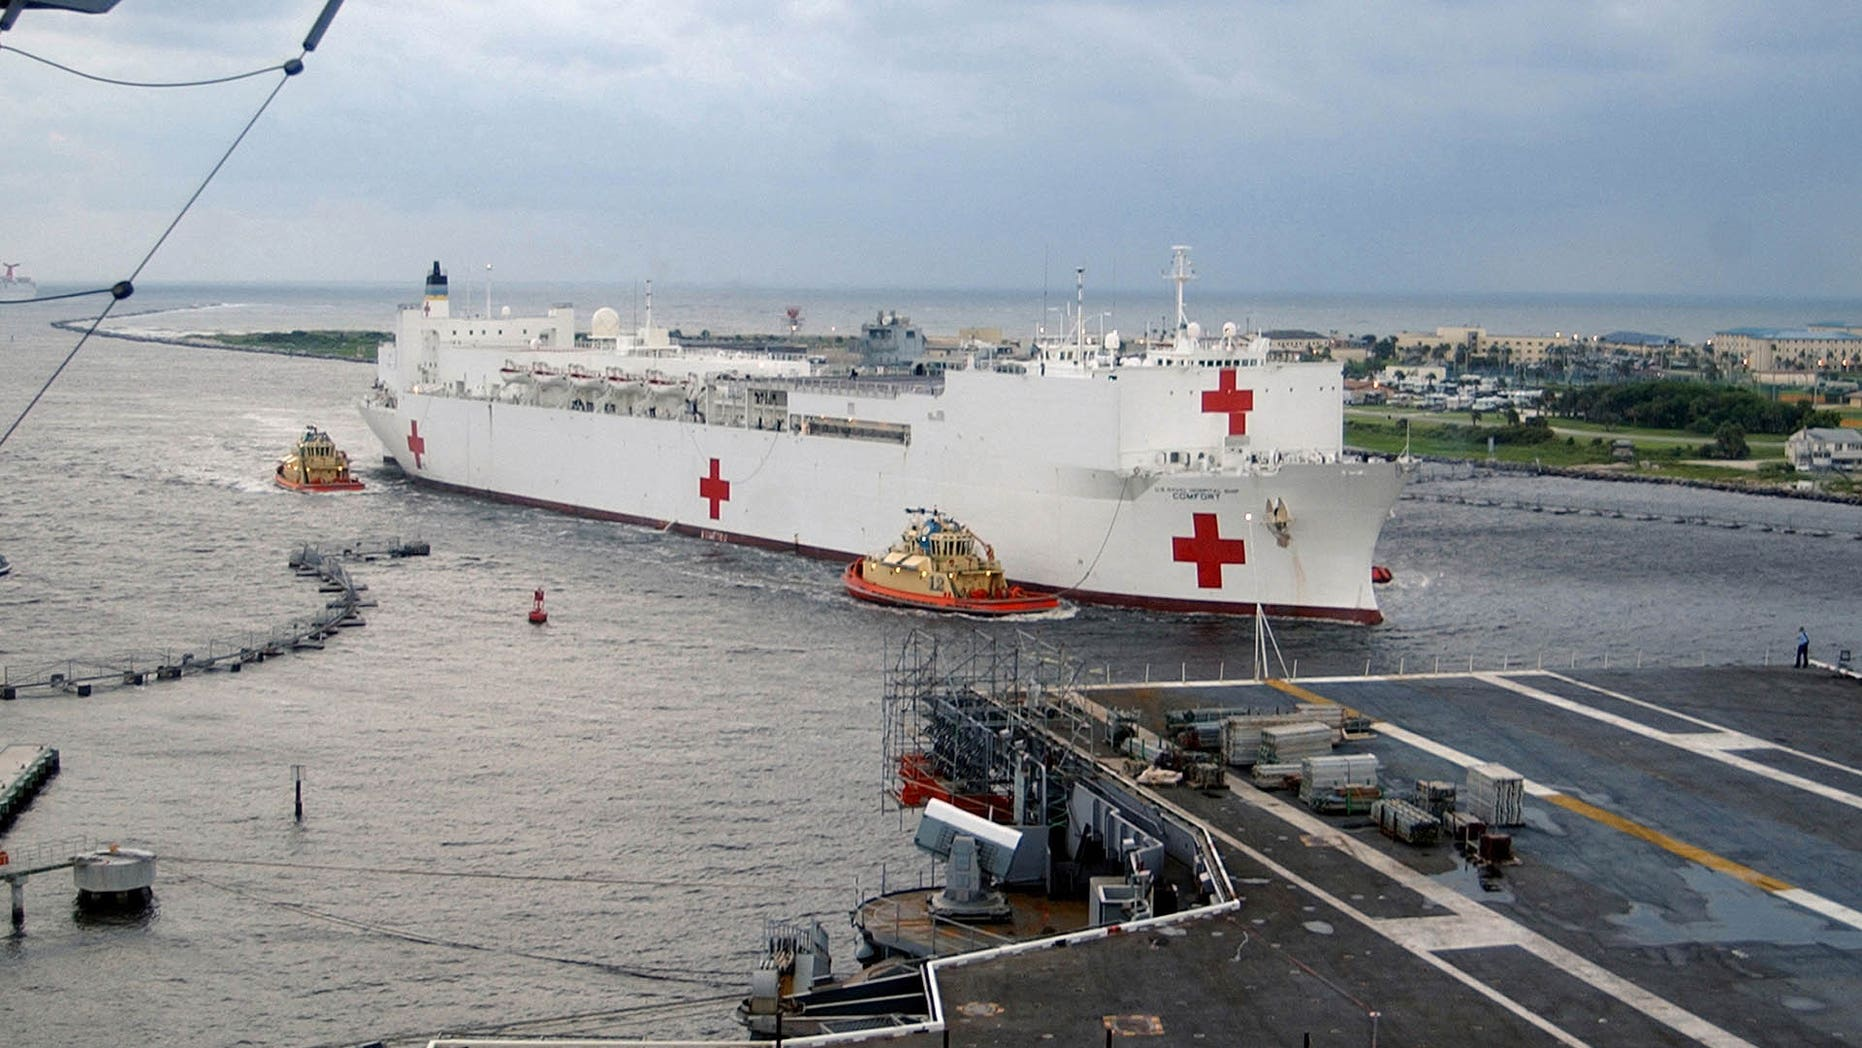 The Military Sealift Command (MSC) hospital ship USNS Comfort (T-AH 20) pulls into Naval Station Mayport, Florida, September 5, 2005, to take on supplies on their way to aid victims of Hurricane Katrina. The Navy's involvement in the Hurricane Katrina humanitarian assistance operations is led by the Federal Emergency Management Agency in conjunction with the Department of Defense.